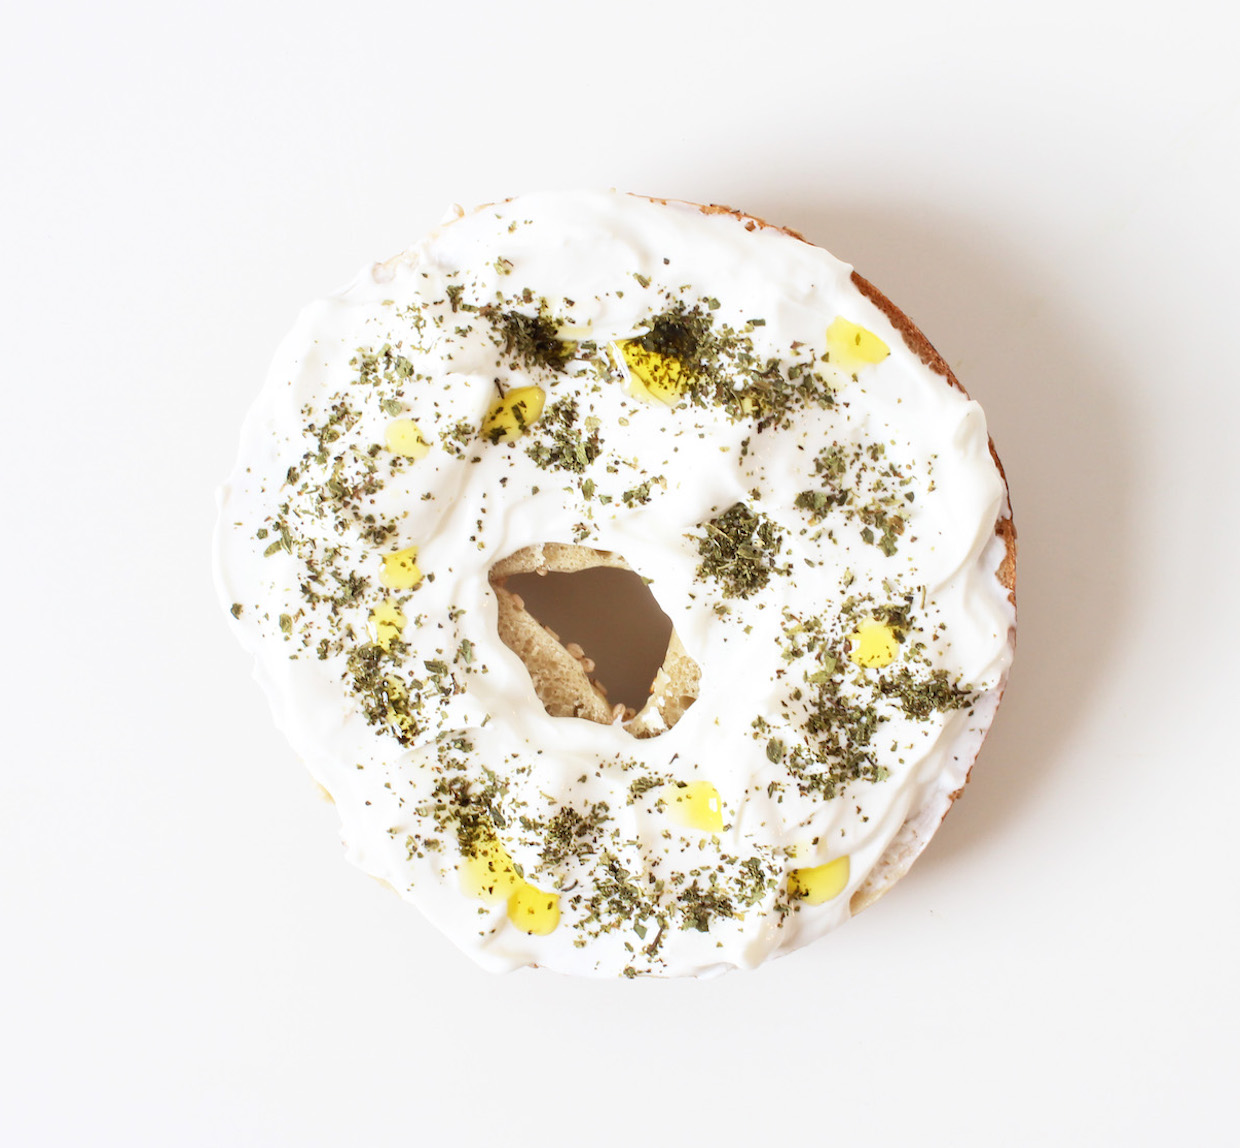 labne-zaatar-and-olive-oil-bagel